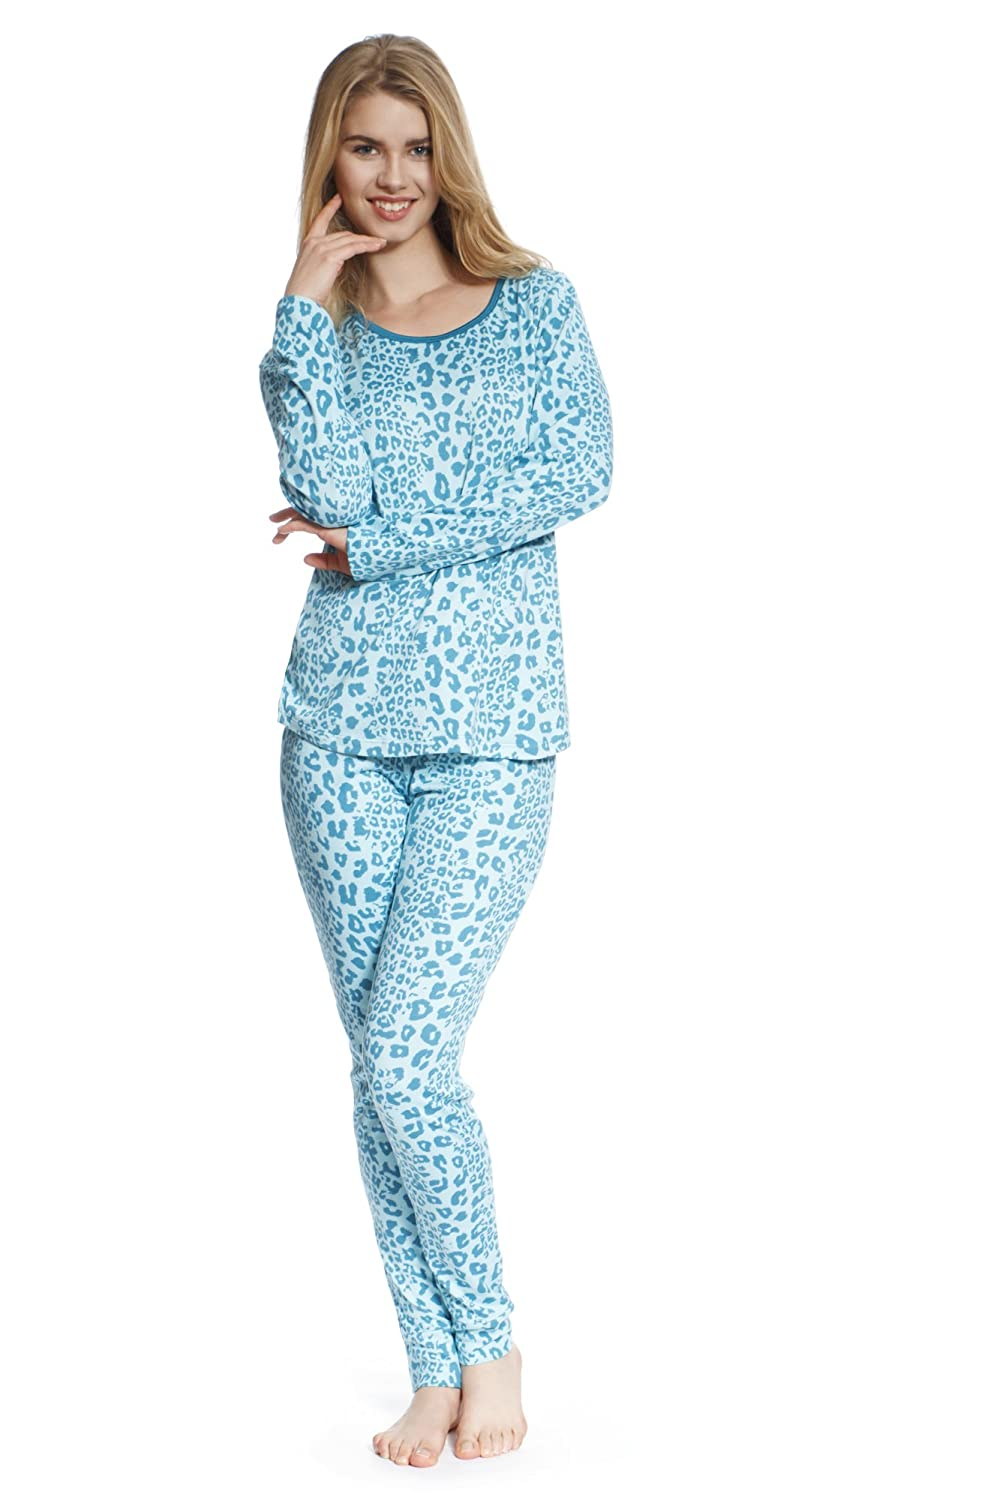 Jones New York Women's Leopard Print Pajamas